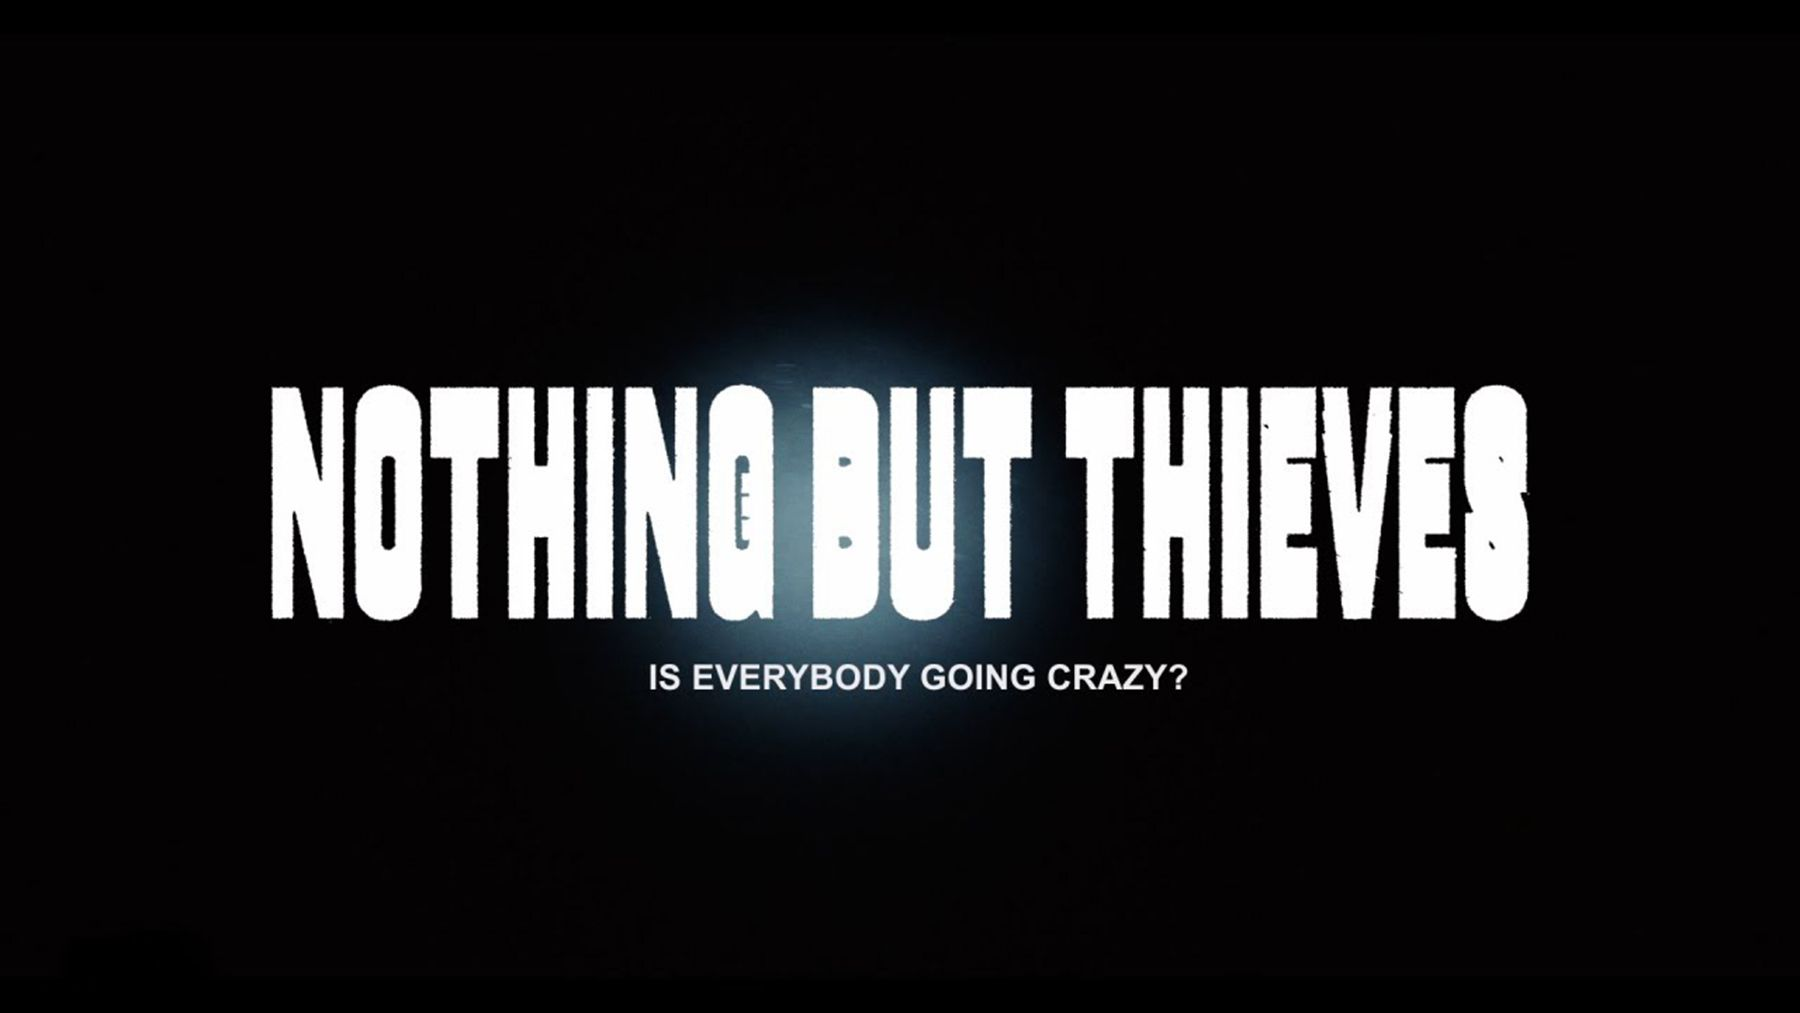 Nothing But Thieves - Is Everybody Going Crazy? | Musik | Was is hier eigentlich los?